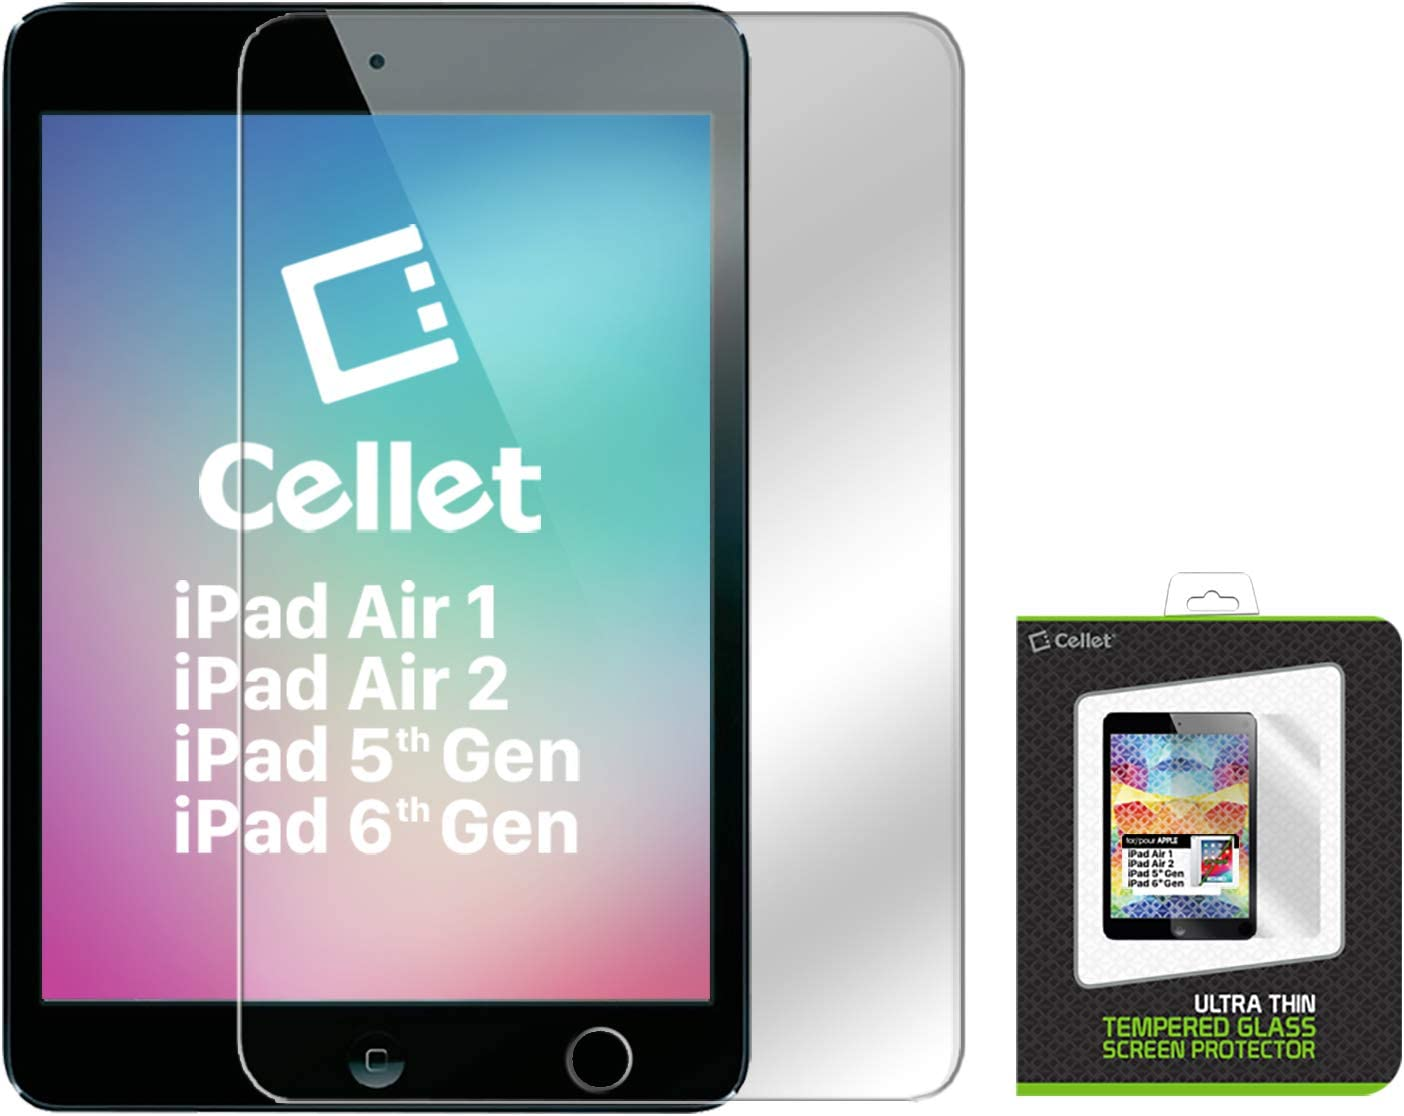 Cellet Ultra-Thin Premium 9H Tempered Glass Screen Protector for Apple iPad Air / iPad Air 2 (0.3mm) - Clear